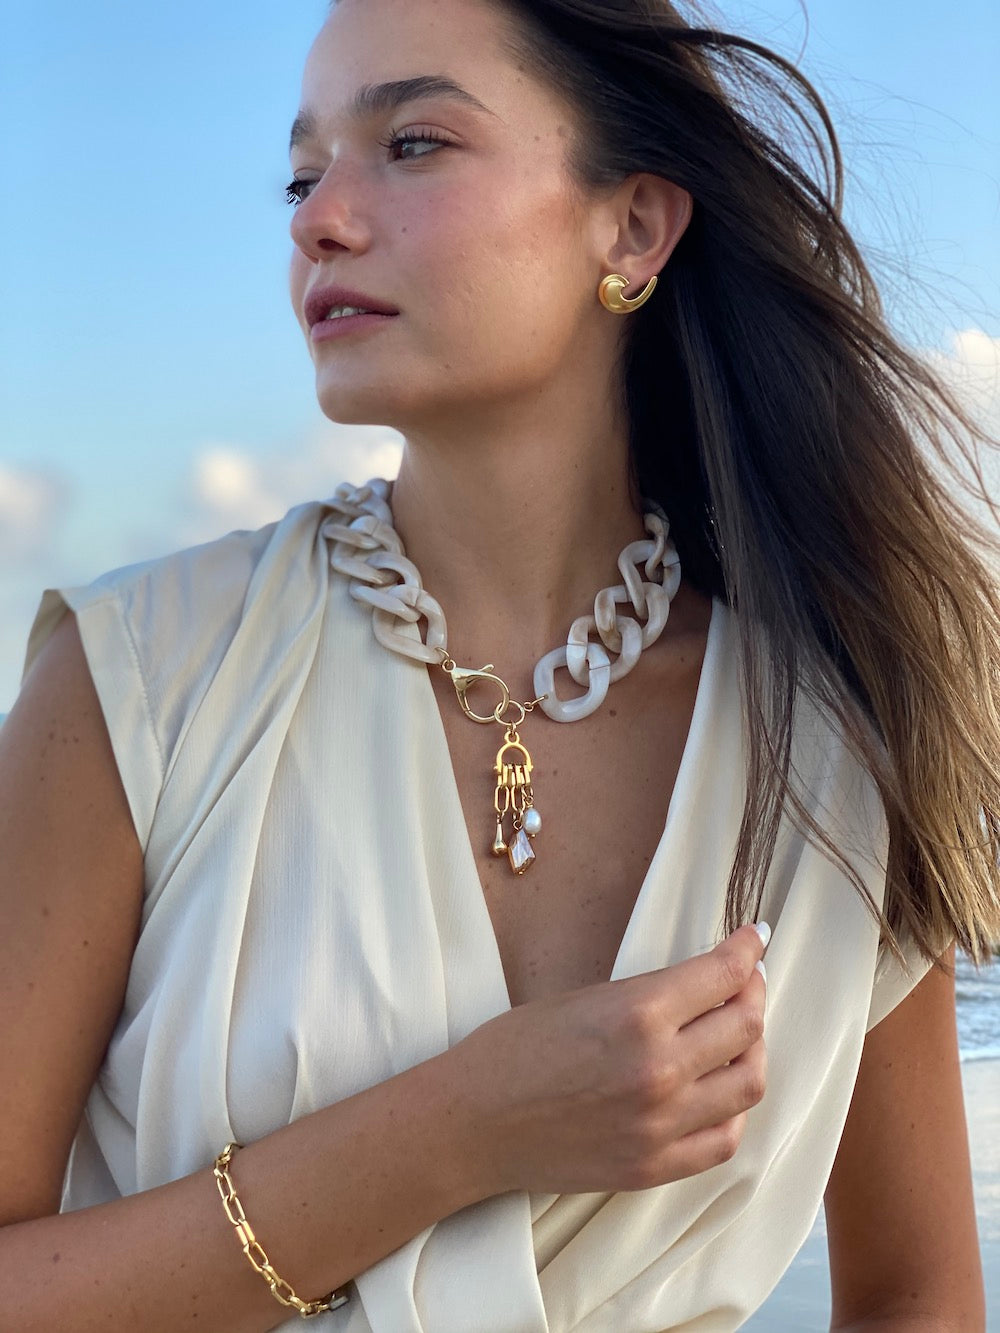 Woman outdoors wearing a short necklace made of oversized nude chain link acrylic with pearl, caramel Swarovski crystal and gold charms hanging from a gold lobster claw clasp in the front